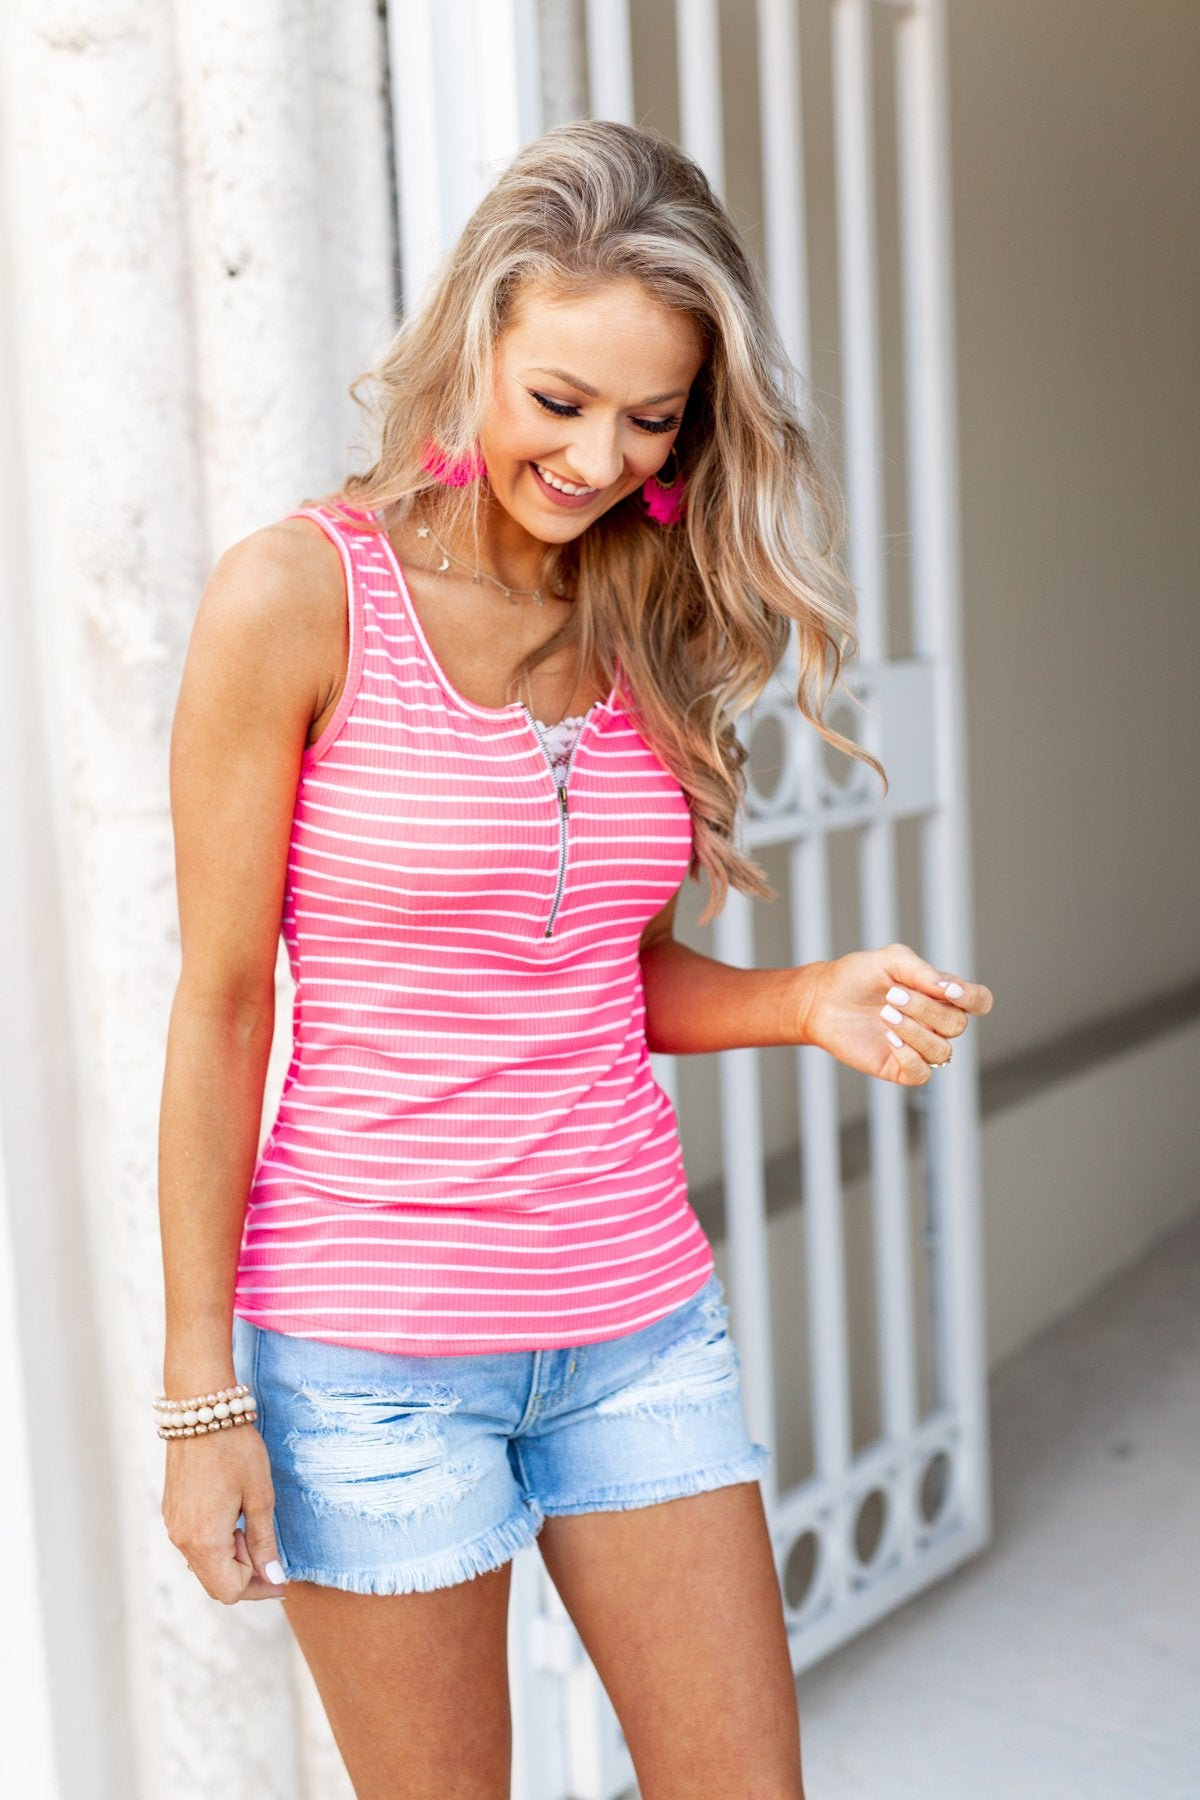 Neon Pink Zipper Tank Top